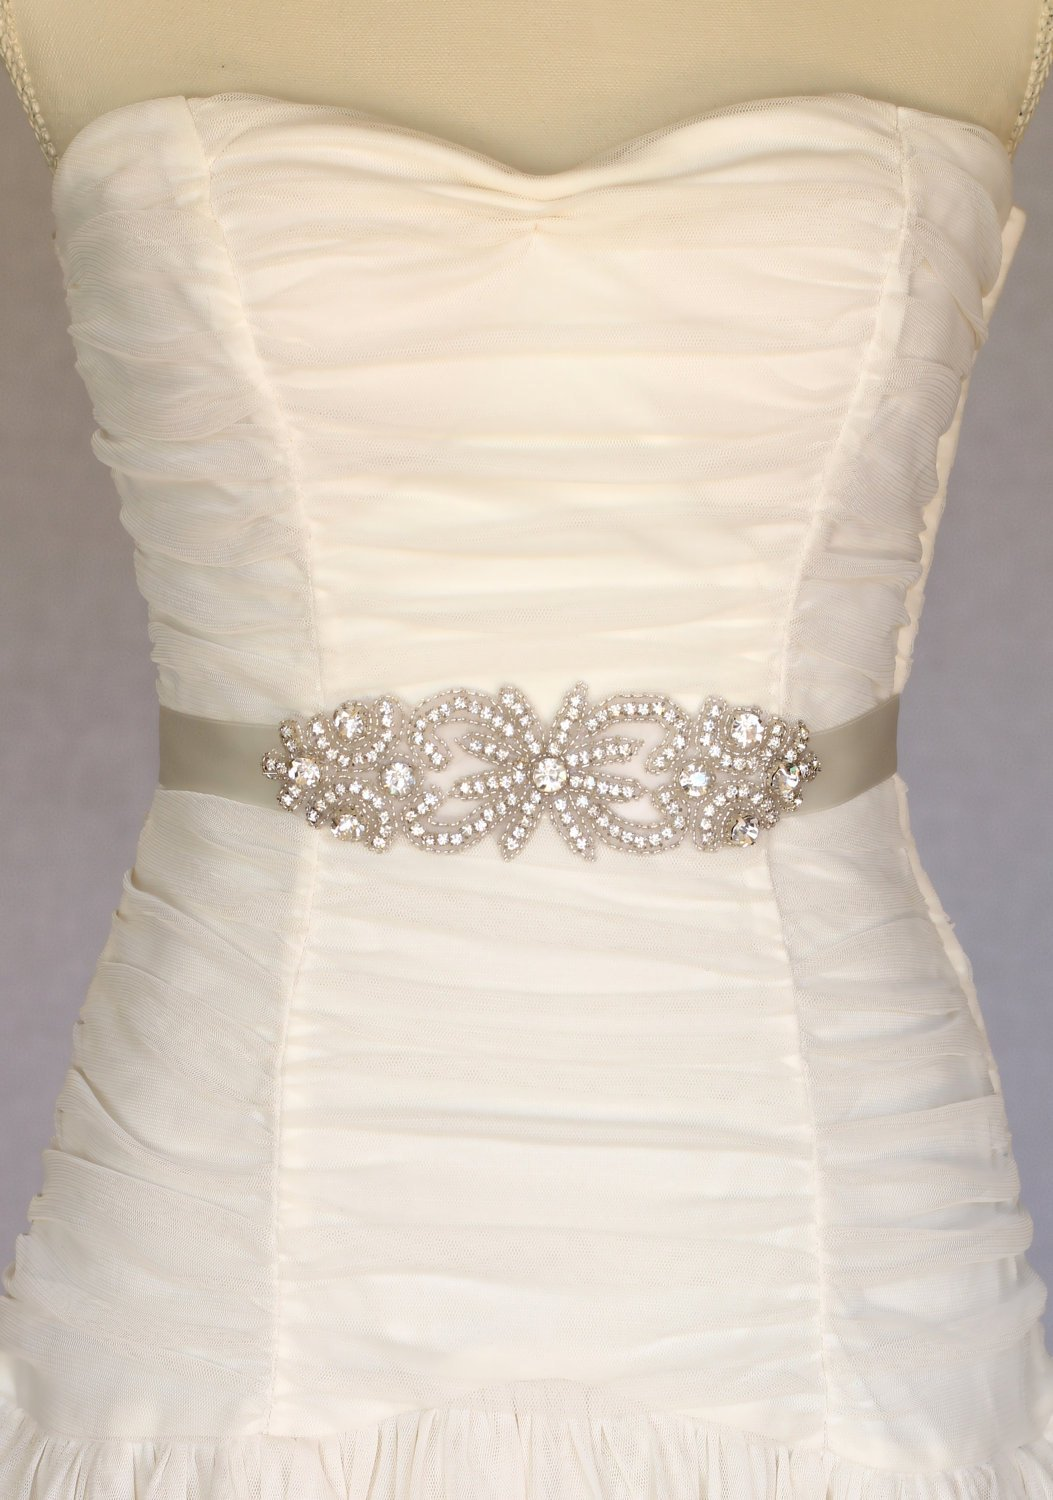 belts for wedding dresses photo - 1